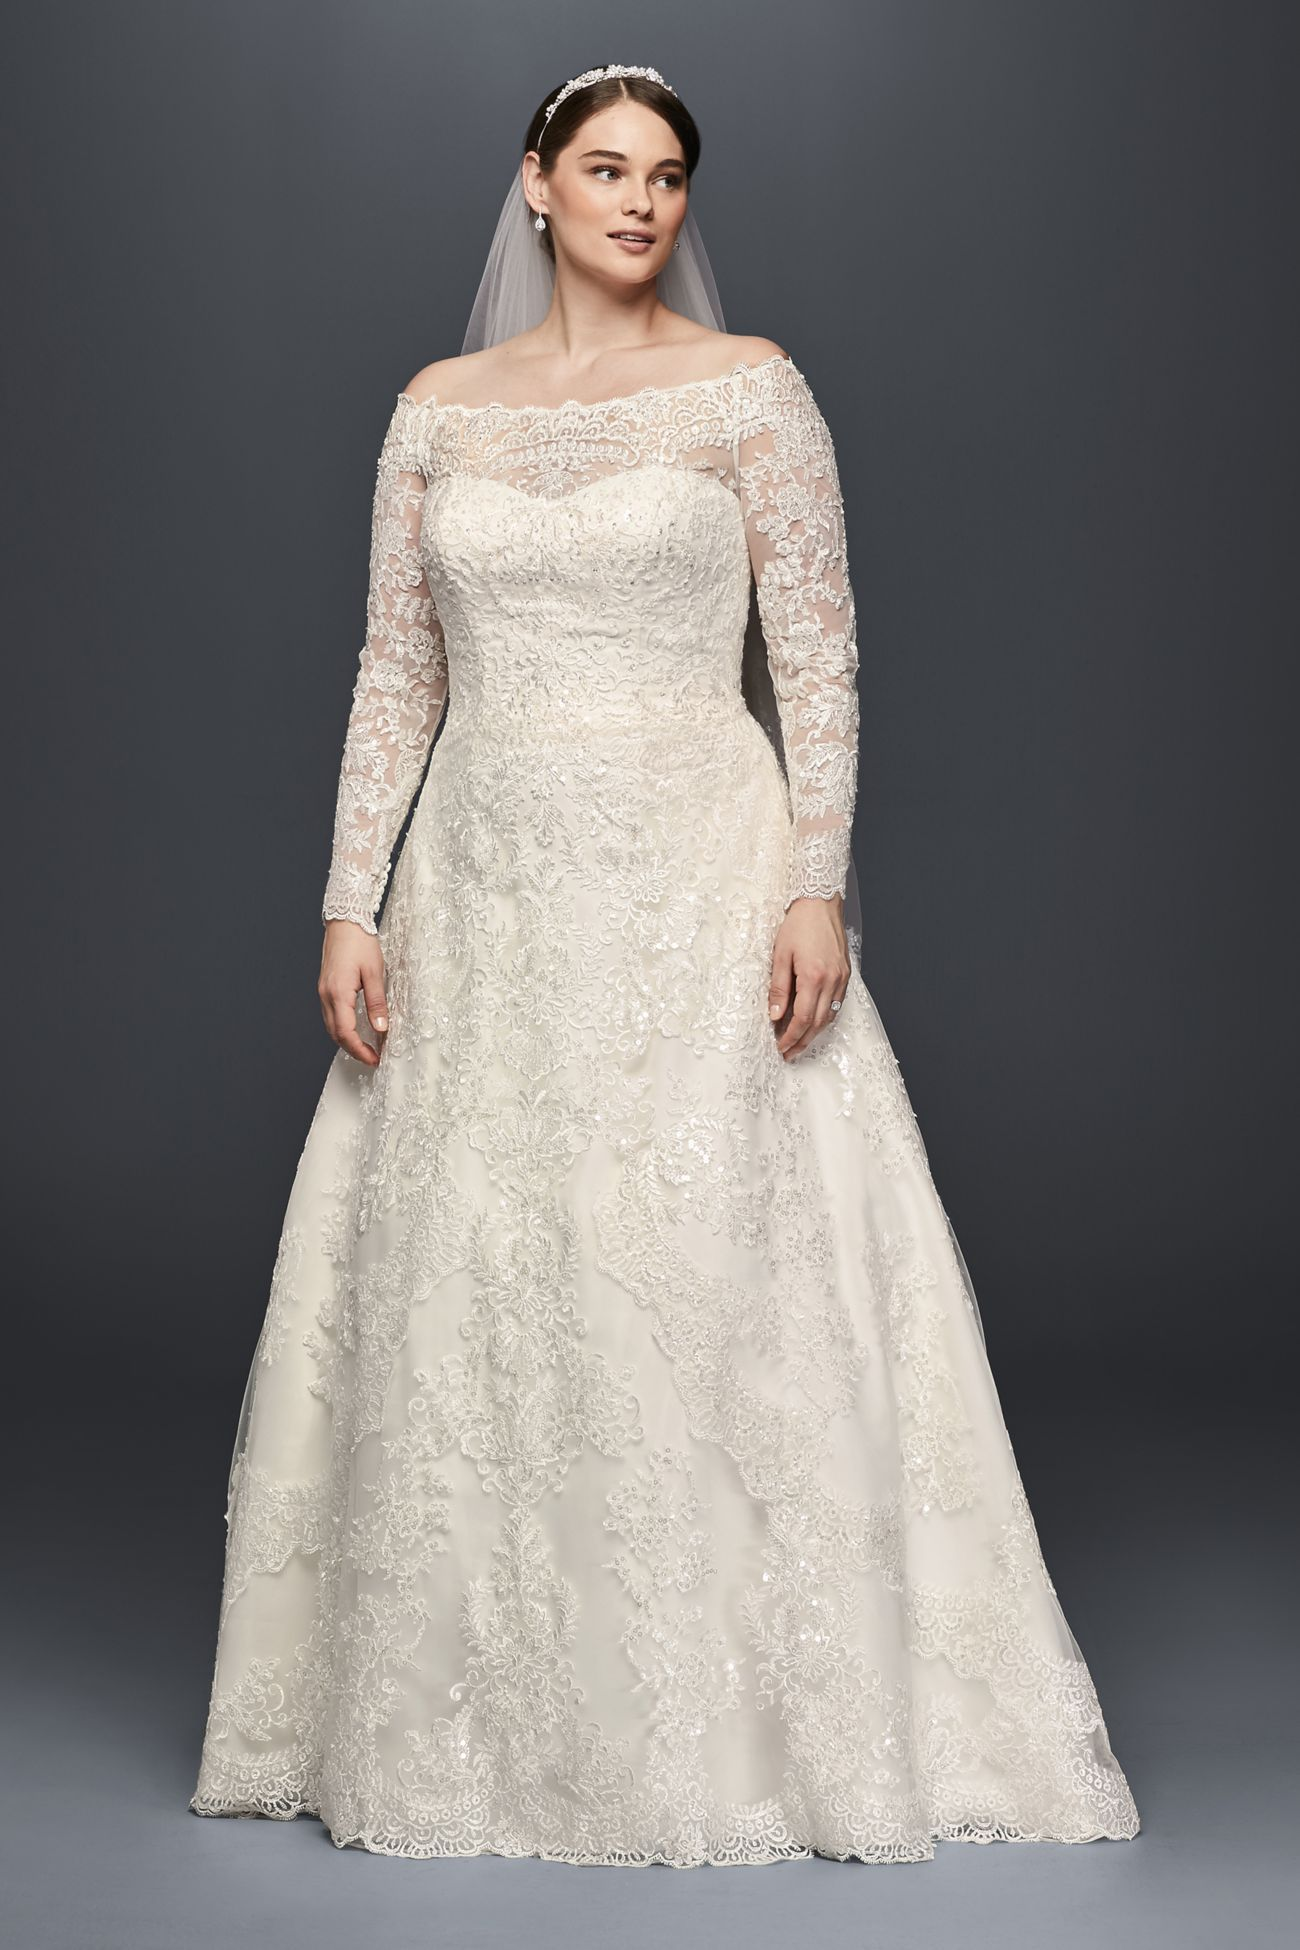 Cwg in love with this dress wedding ideas pinterest lace